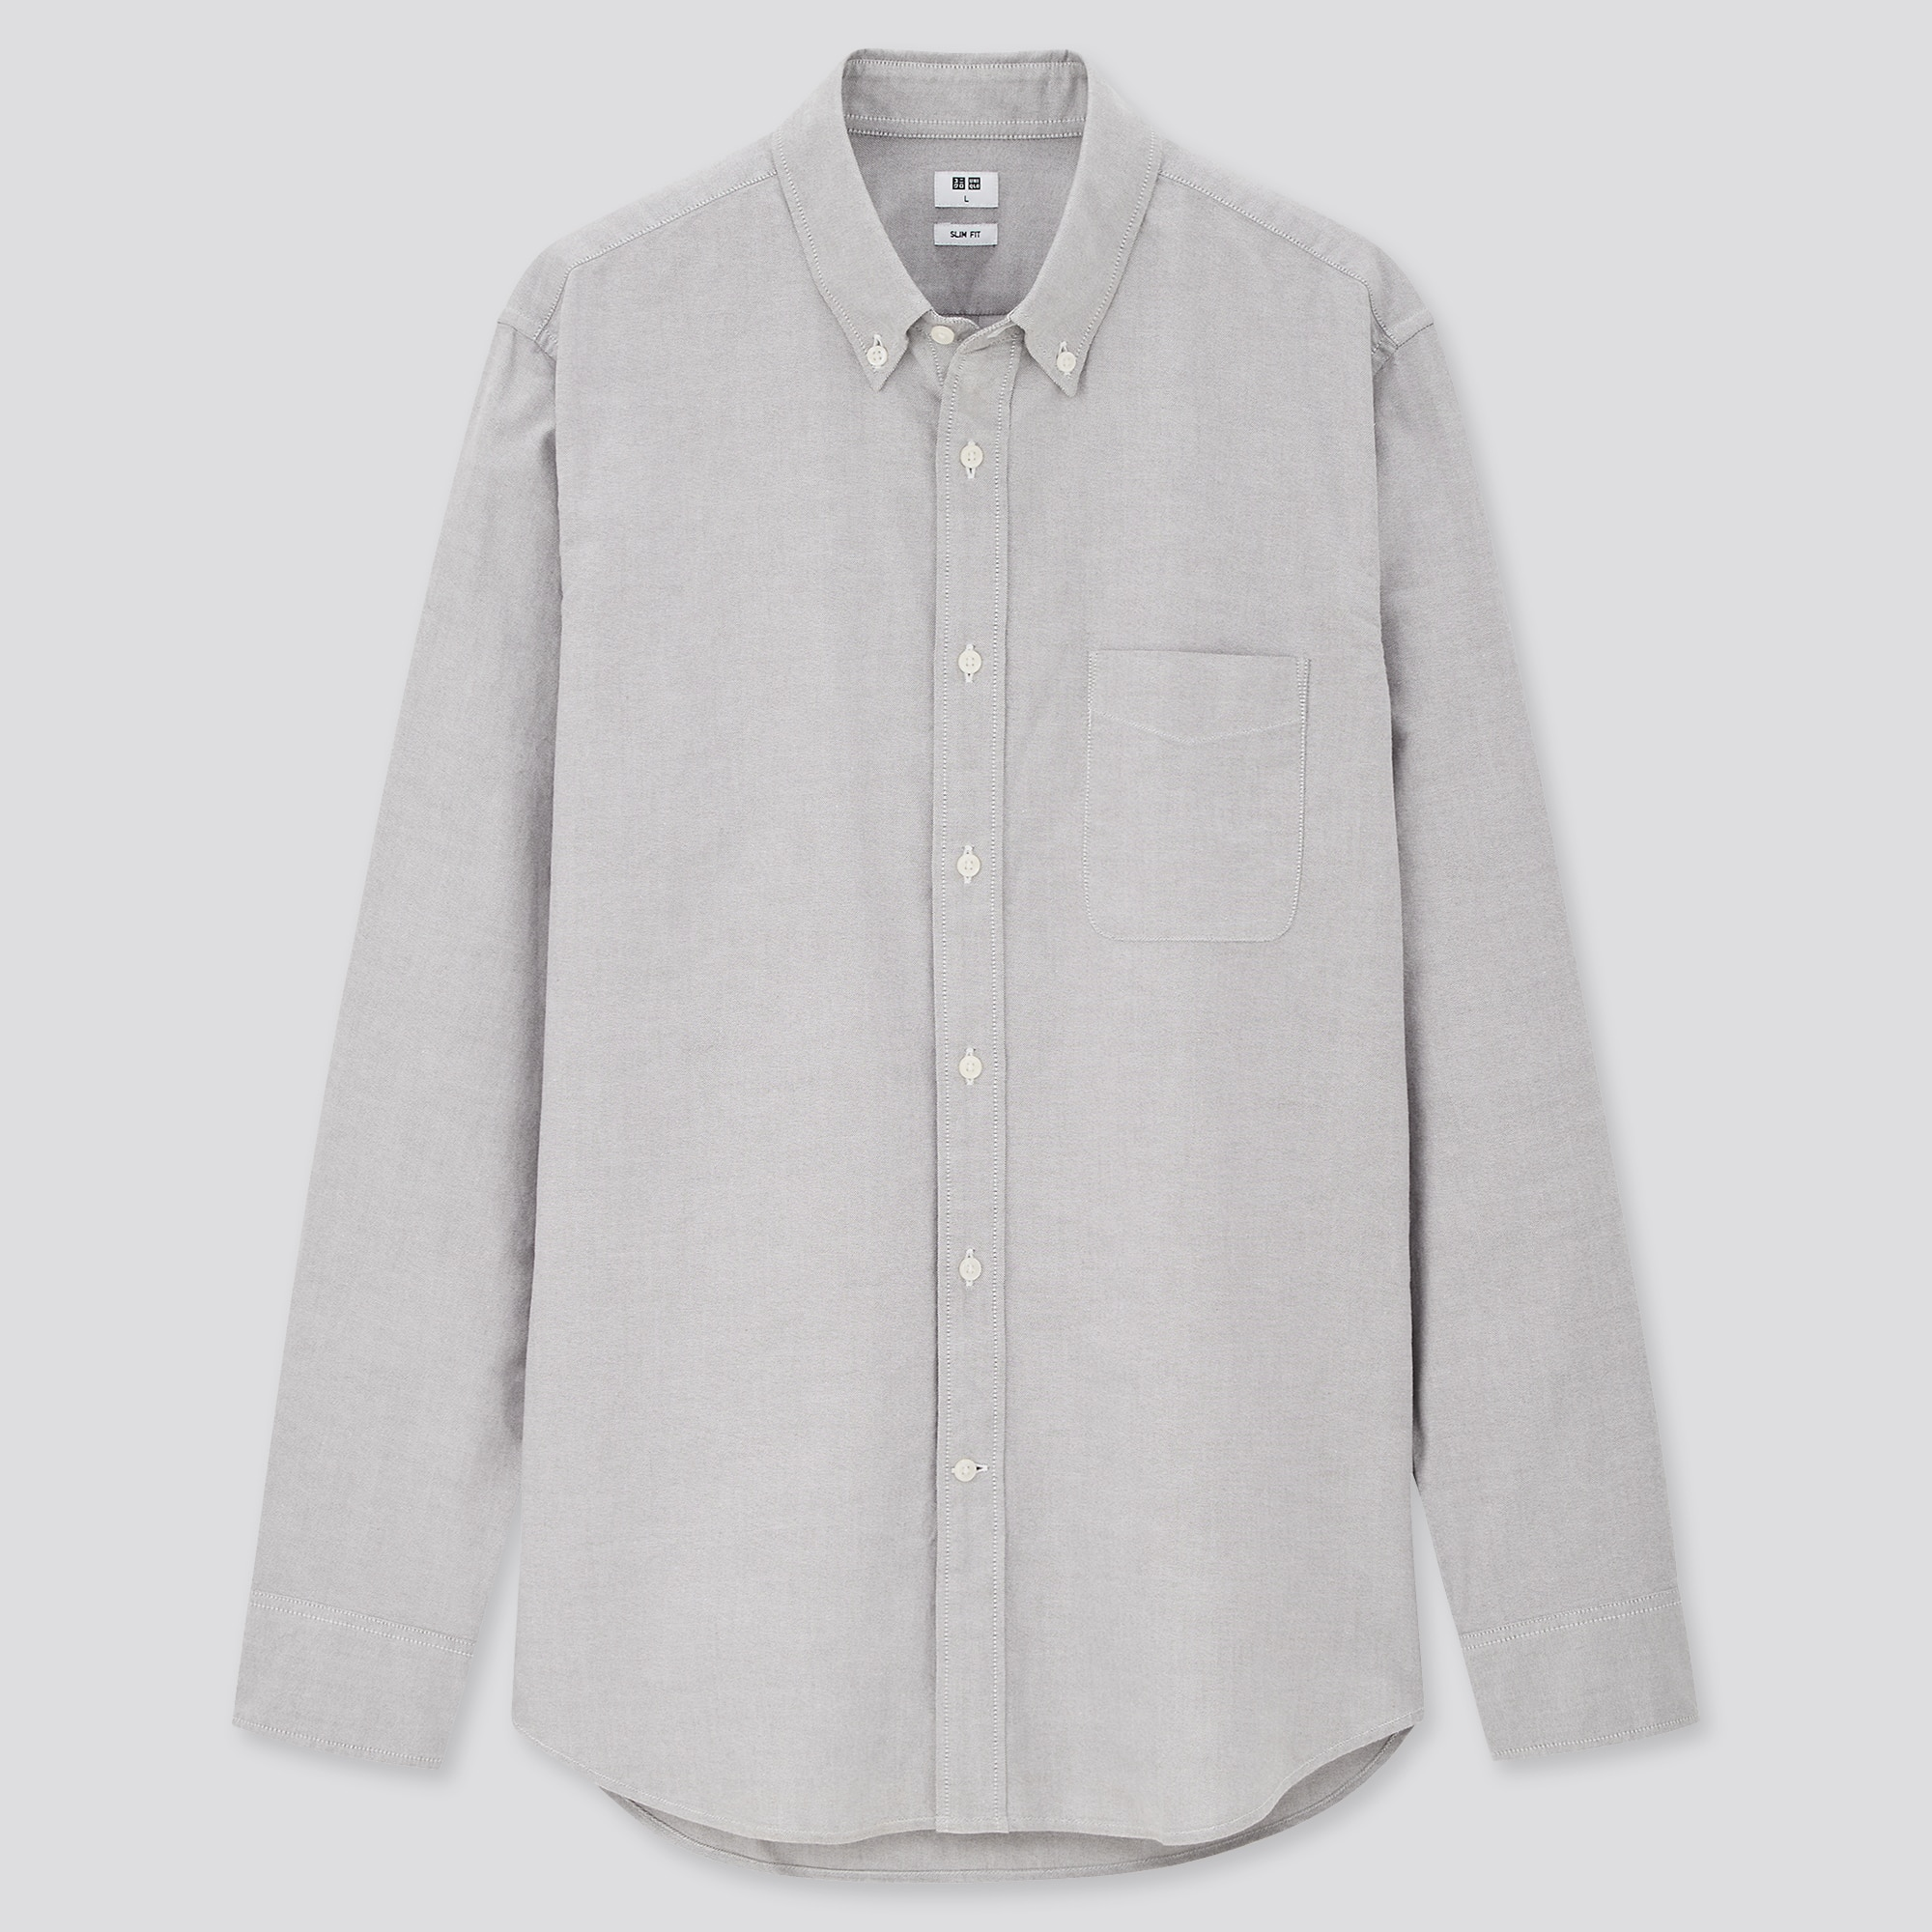 Uniqlo Oxford Cloth Button Downs (OCBDs)